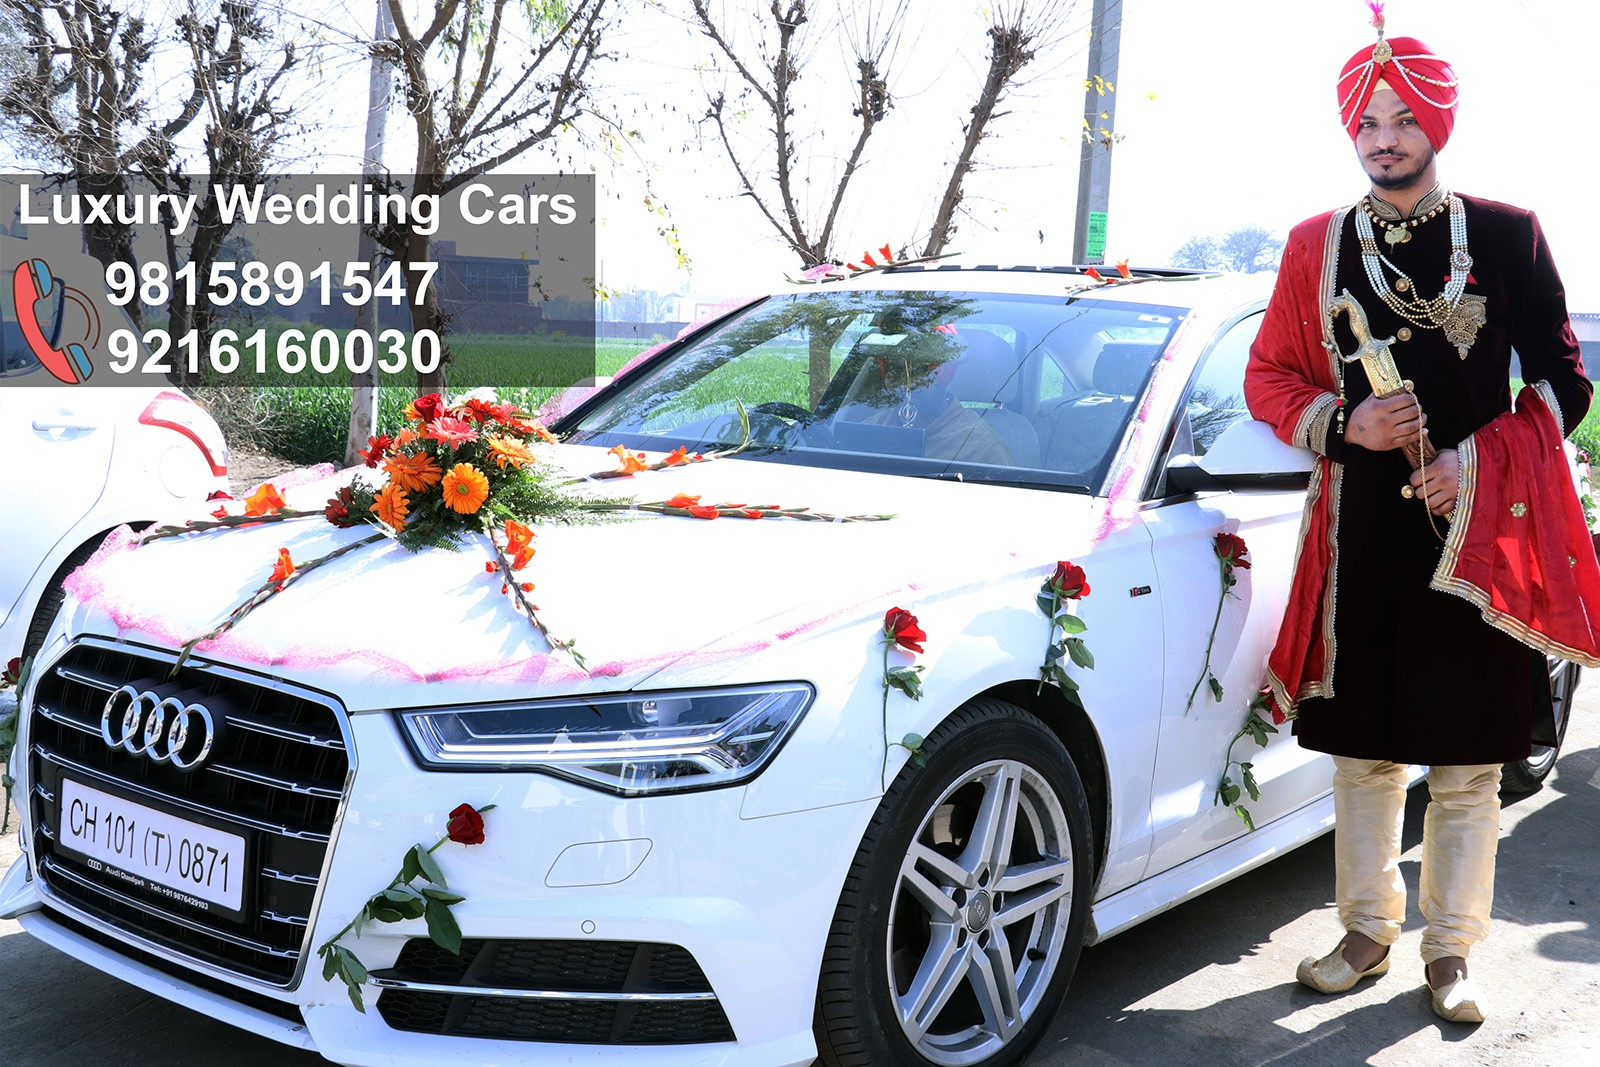 Luxury Car For Wedding in Mohali, Wedding luxury car in Mohali city